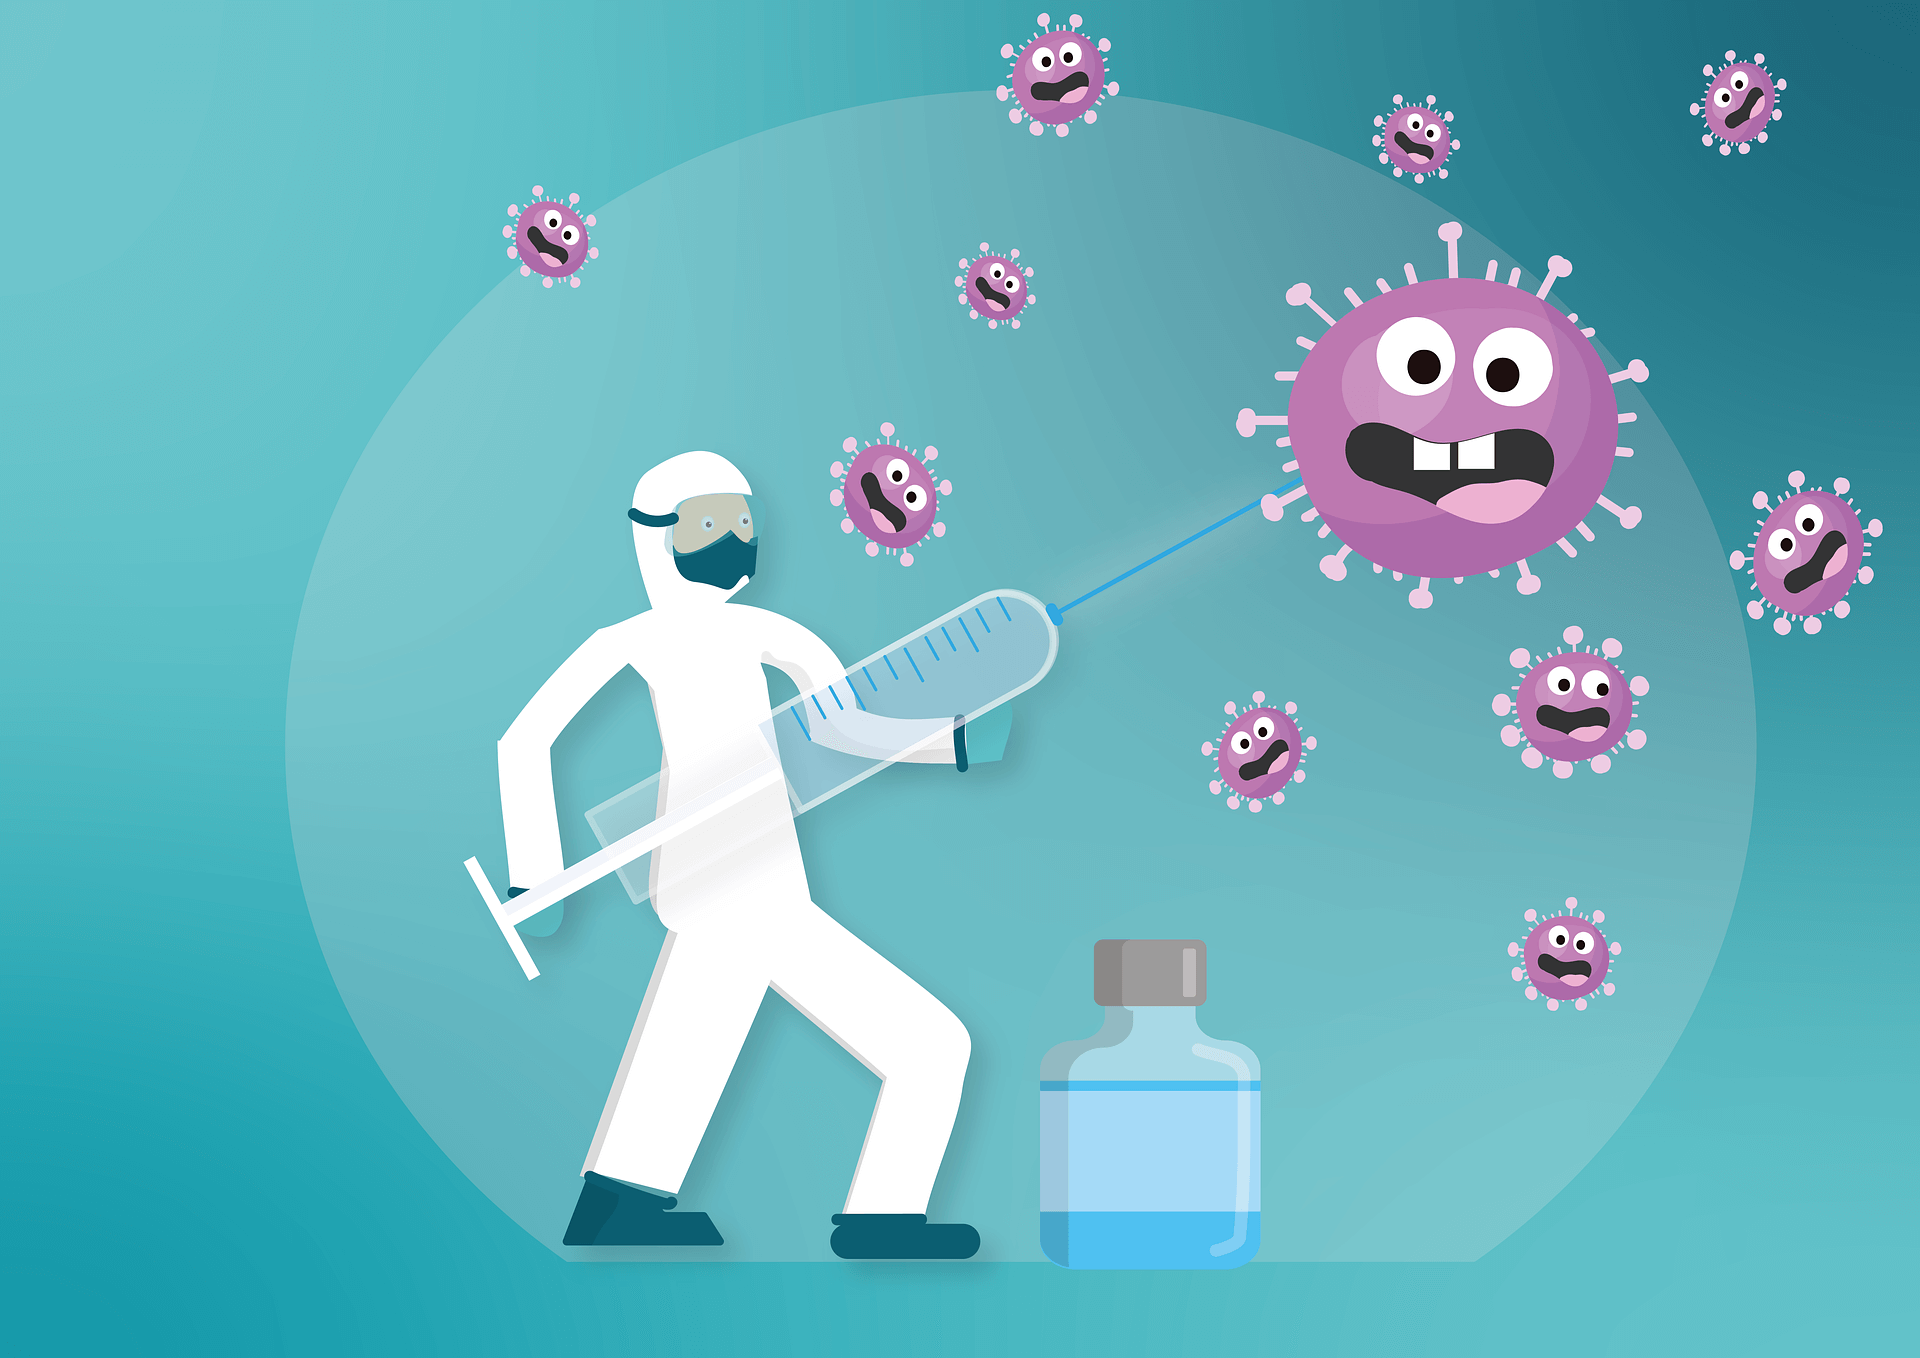 How can Artificial Intelligence help with the Coronavirus